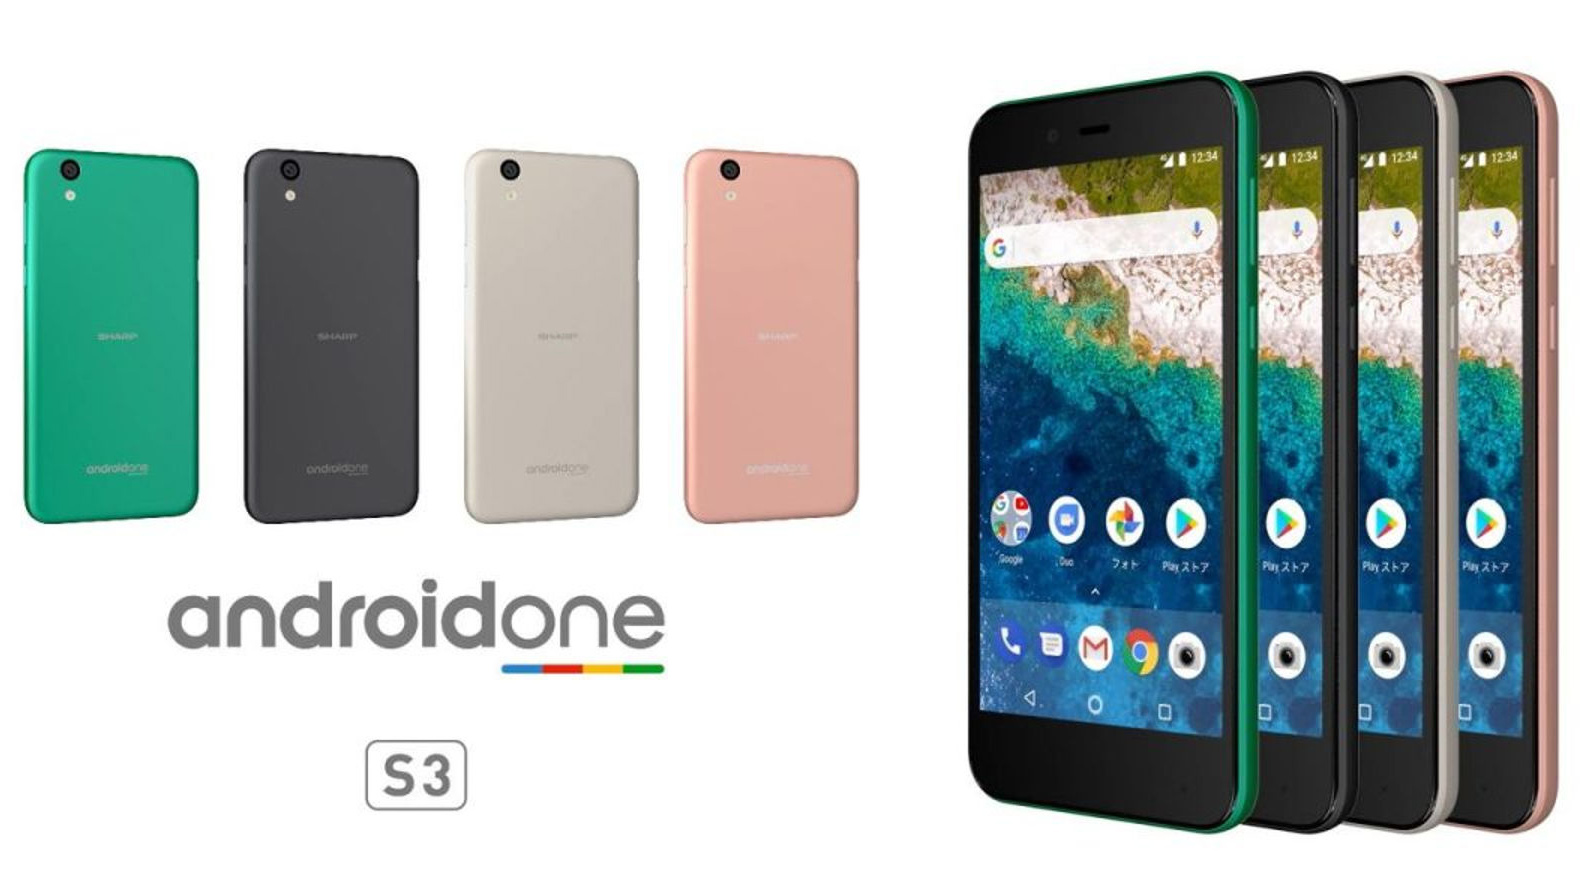 Sharp Announced A Cute New Android One Phone